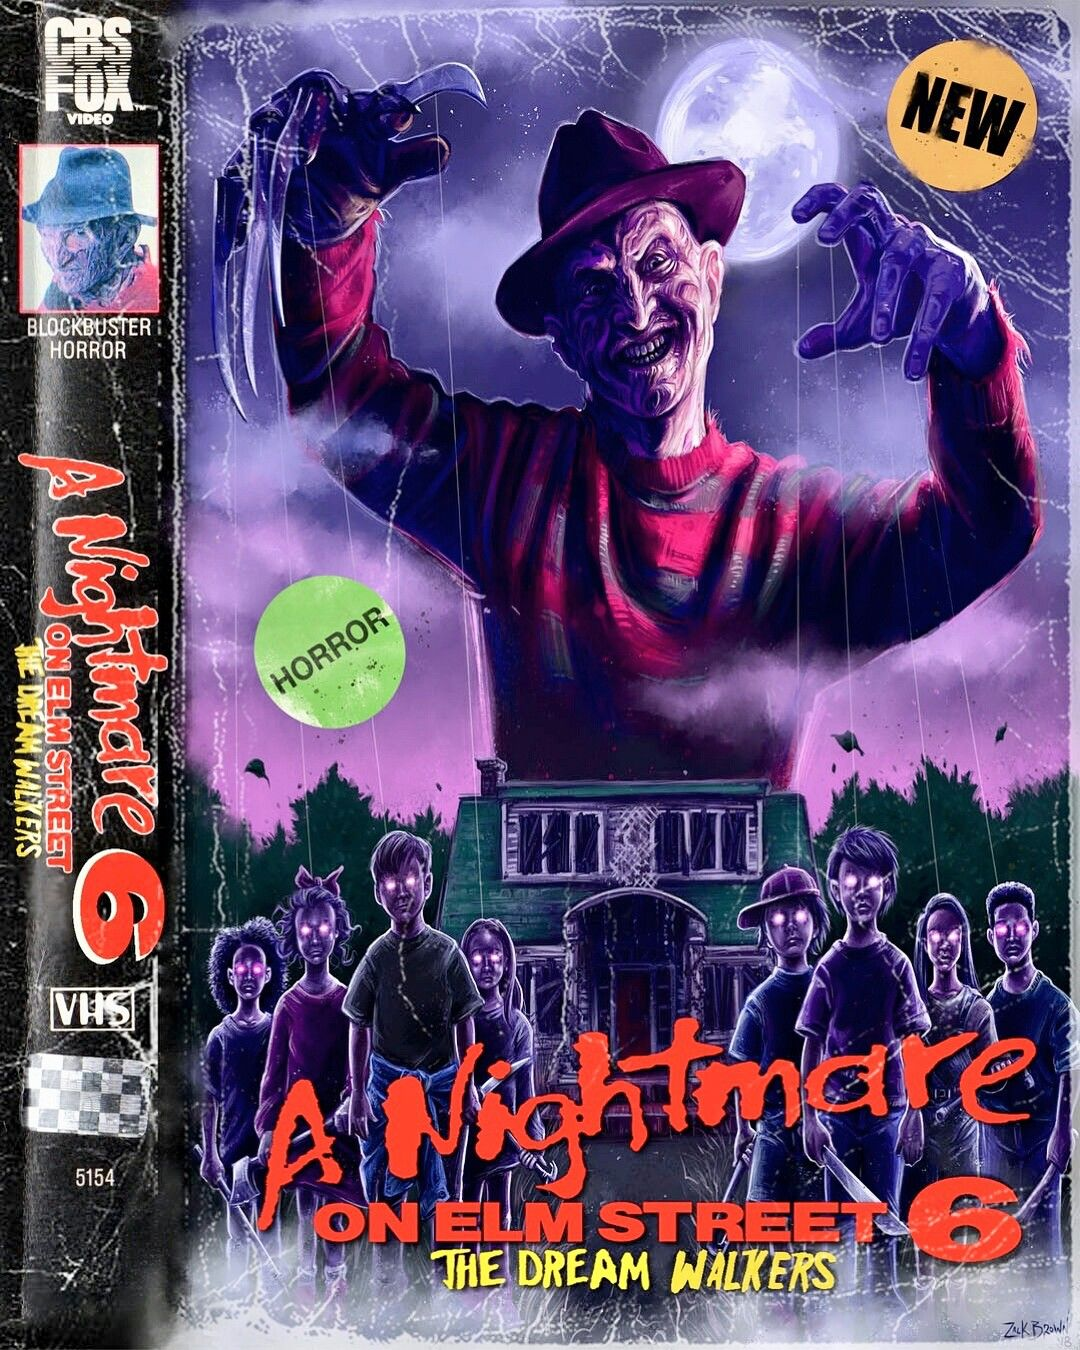 Pin By The Slasher On Freddy Krueger With Images Horror Movies